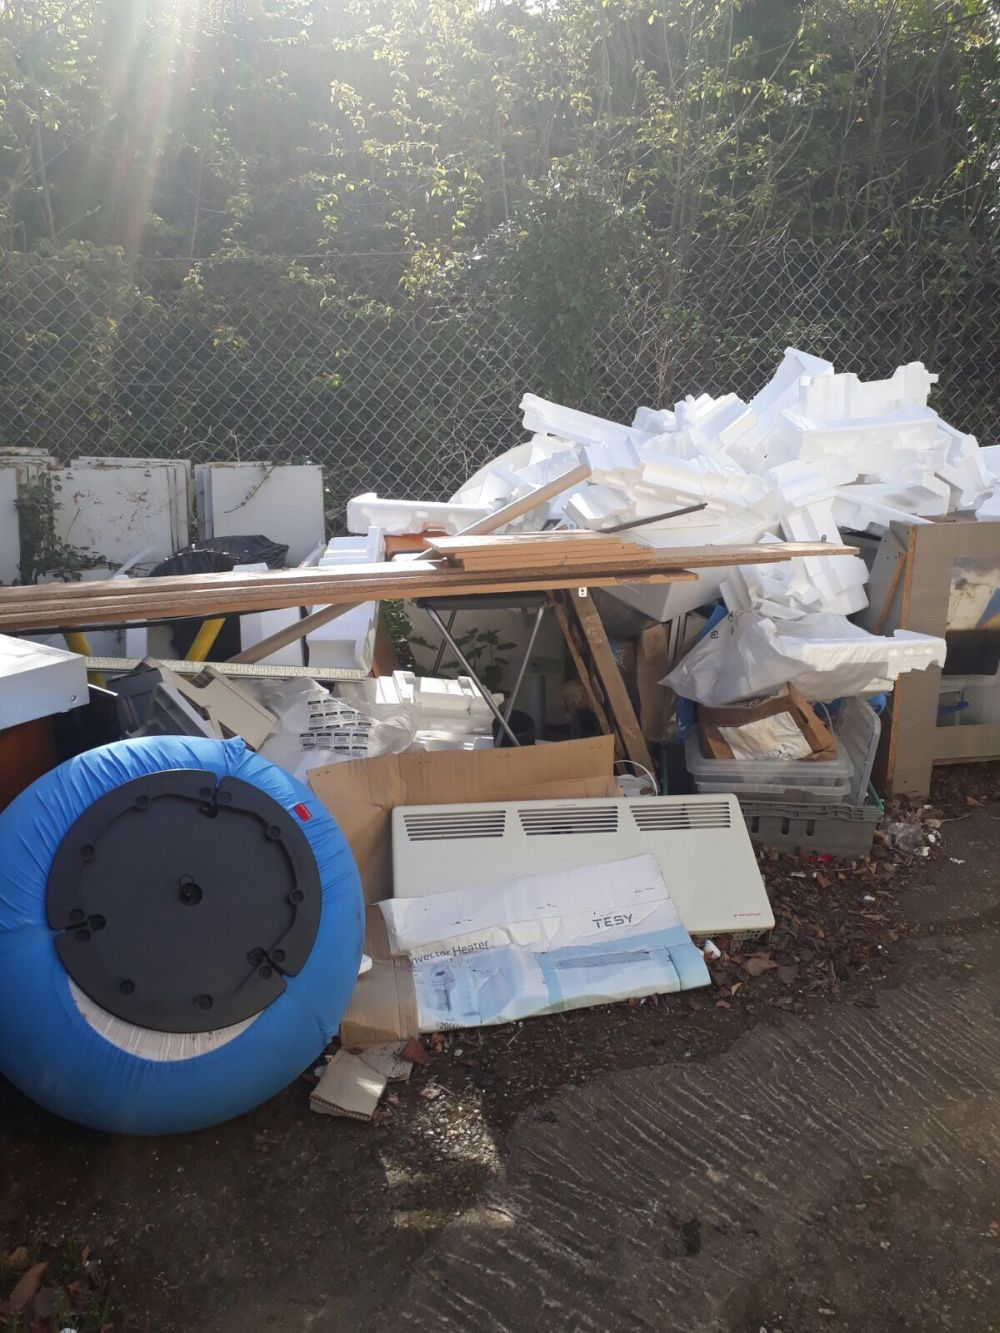 Junk Disposal Service in Edgware